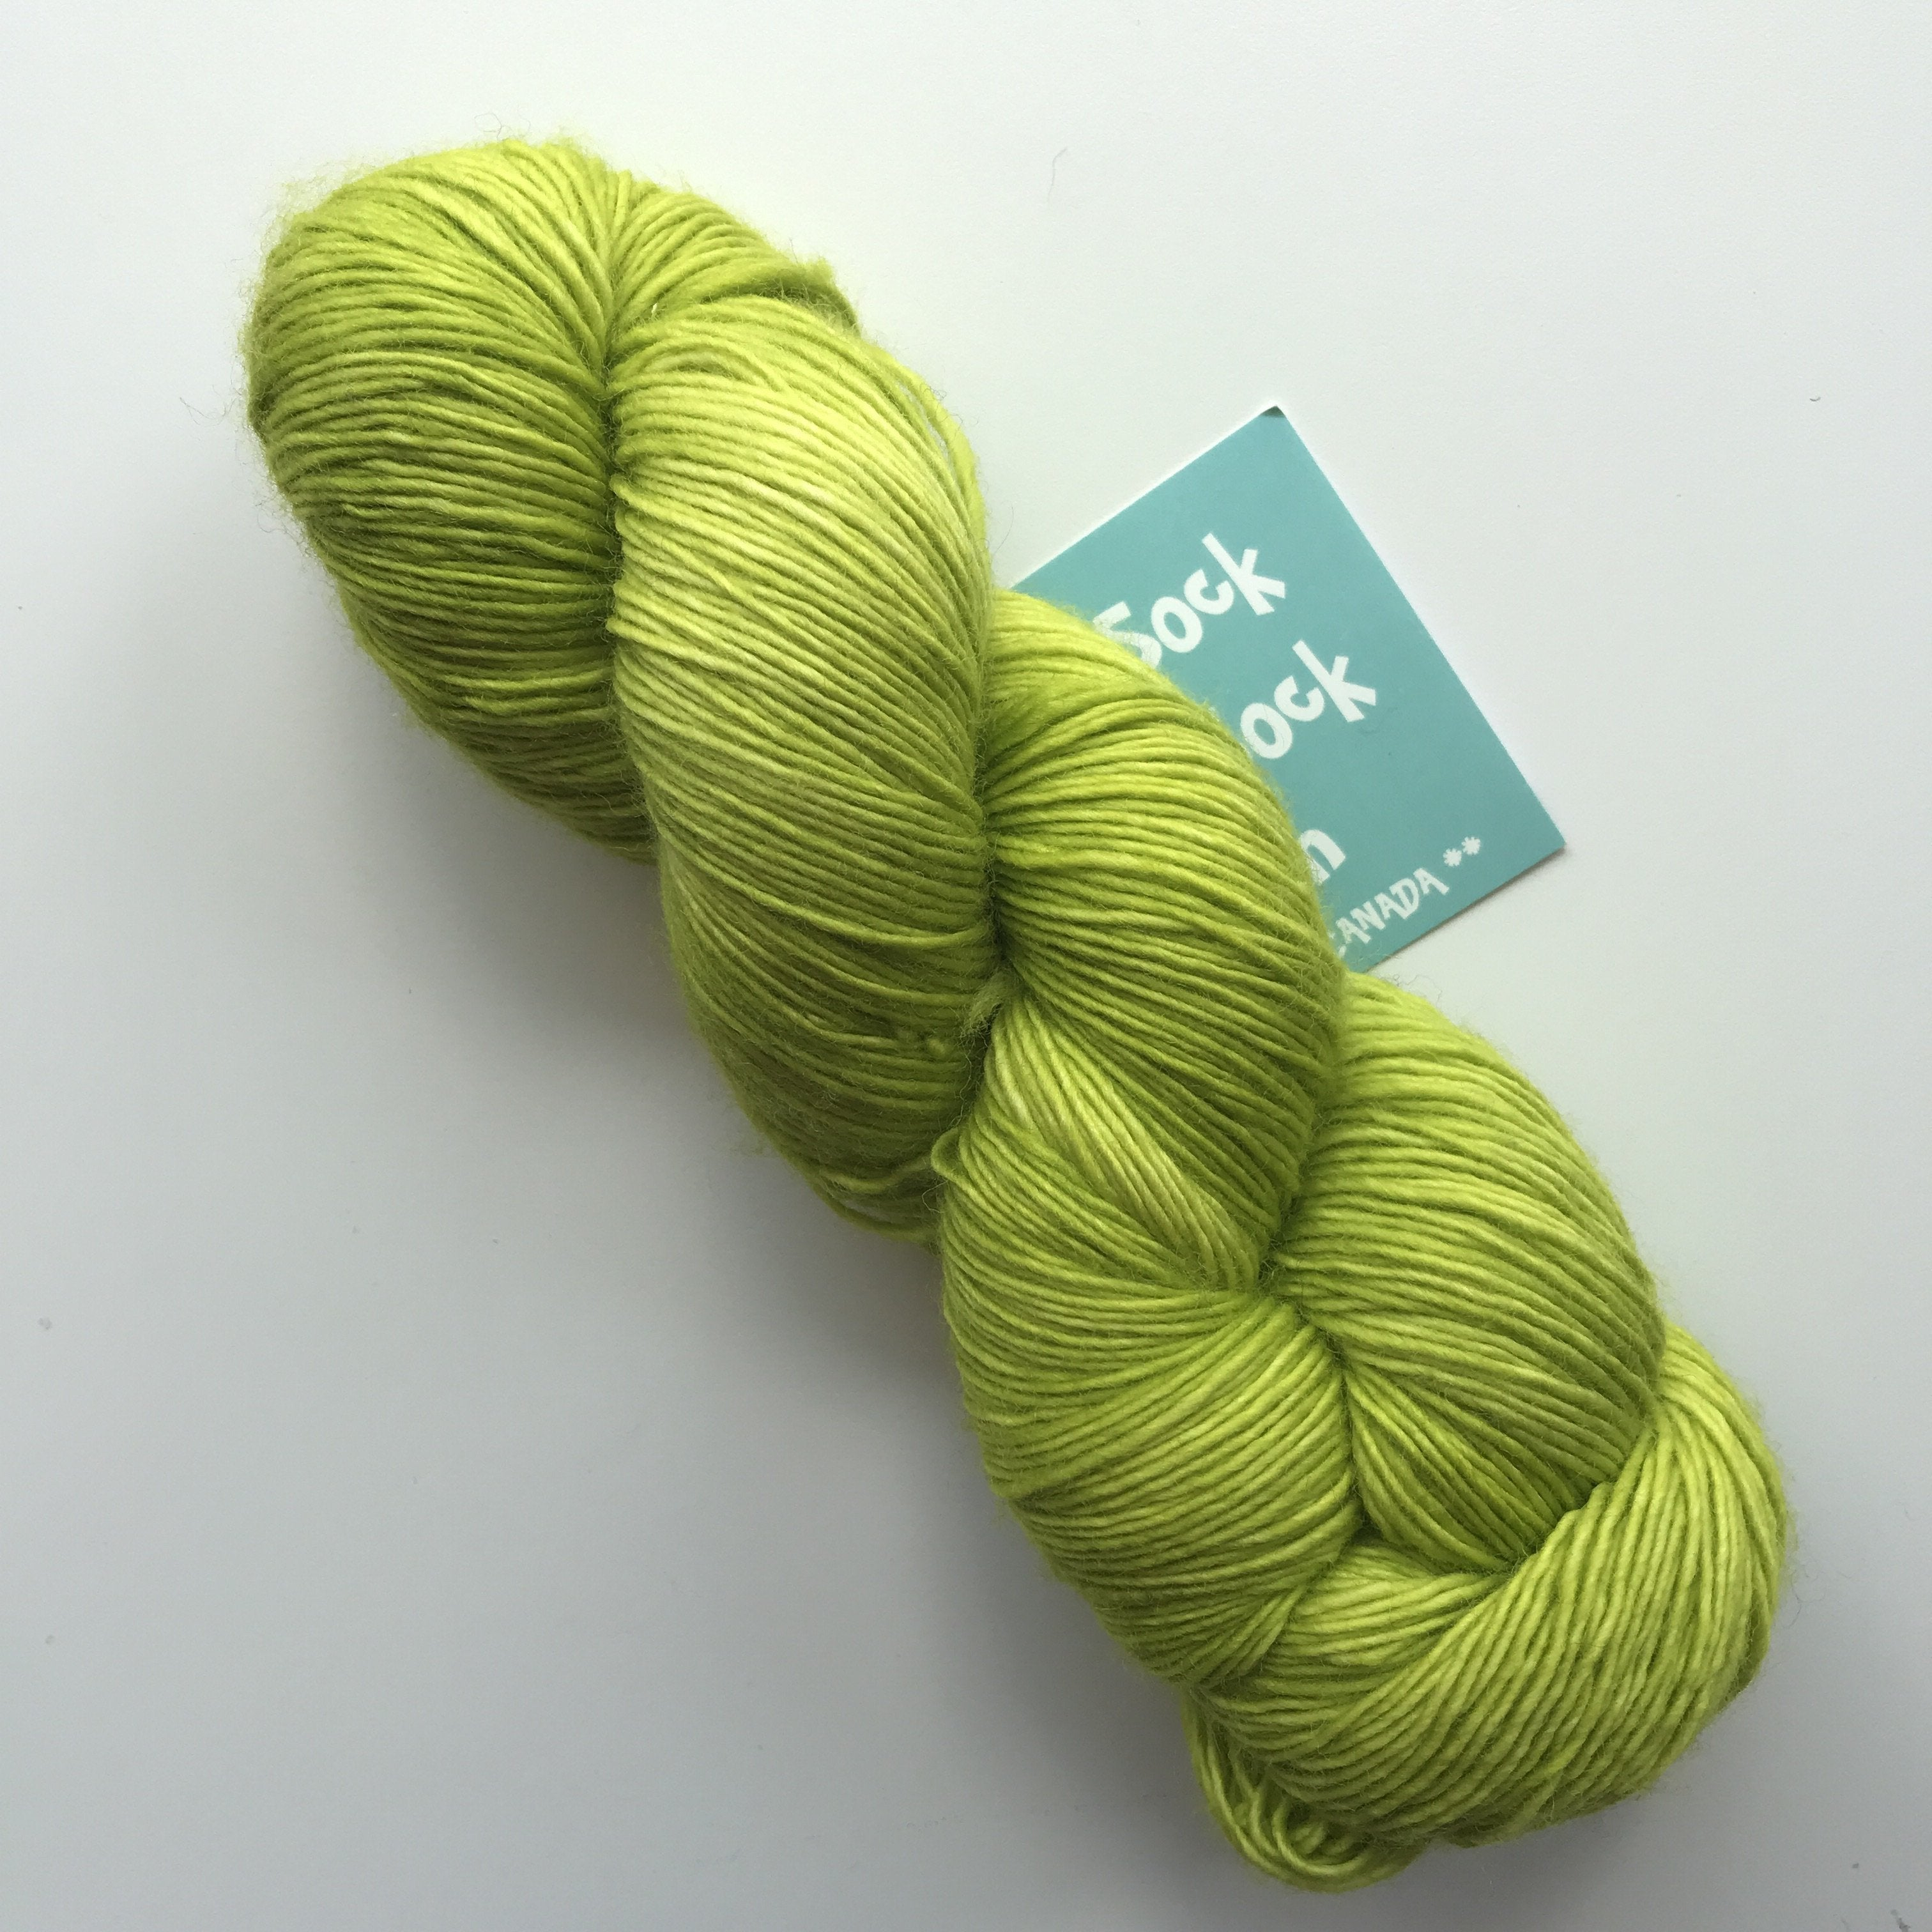 Chartreuse - Singleton - Red Sock Blue Sock Yarn Co